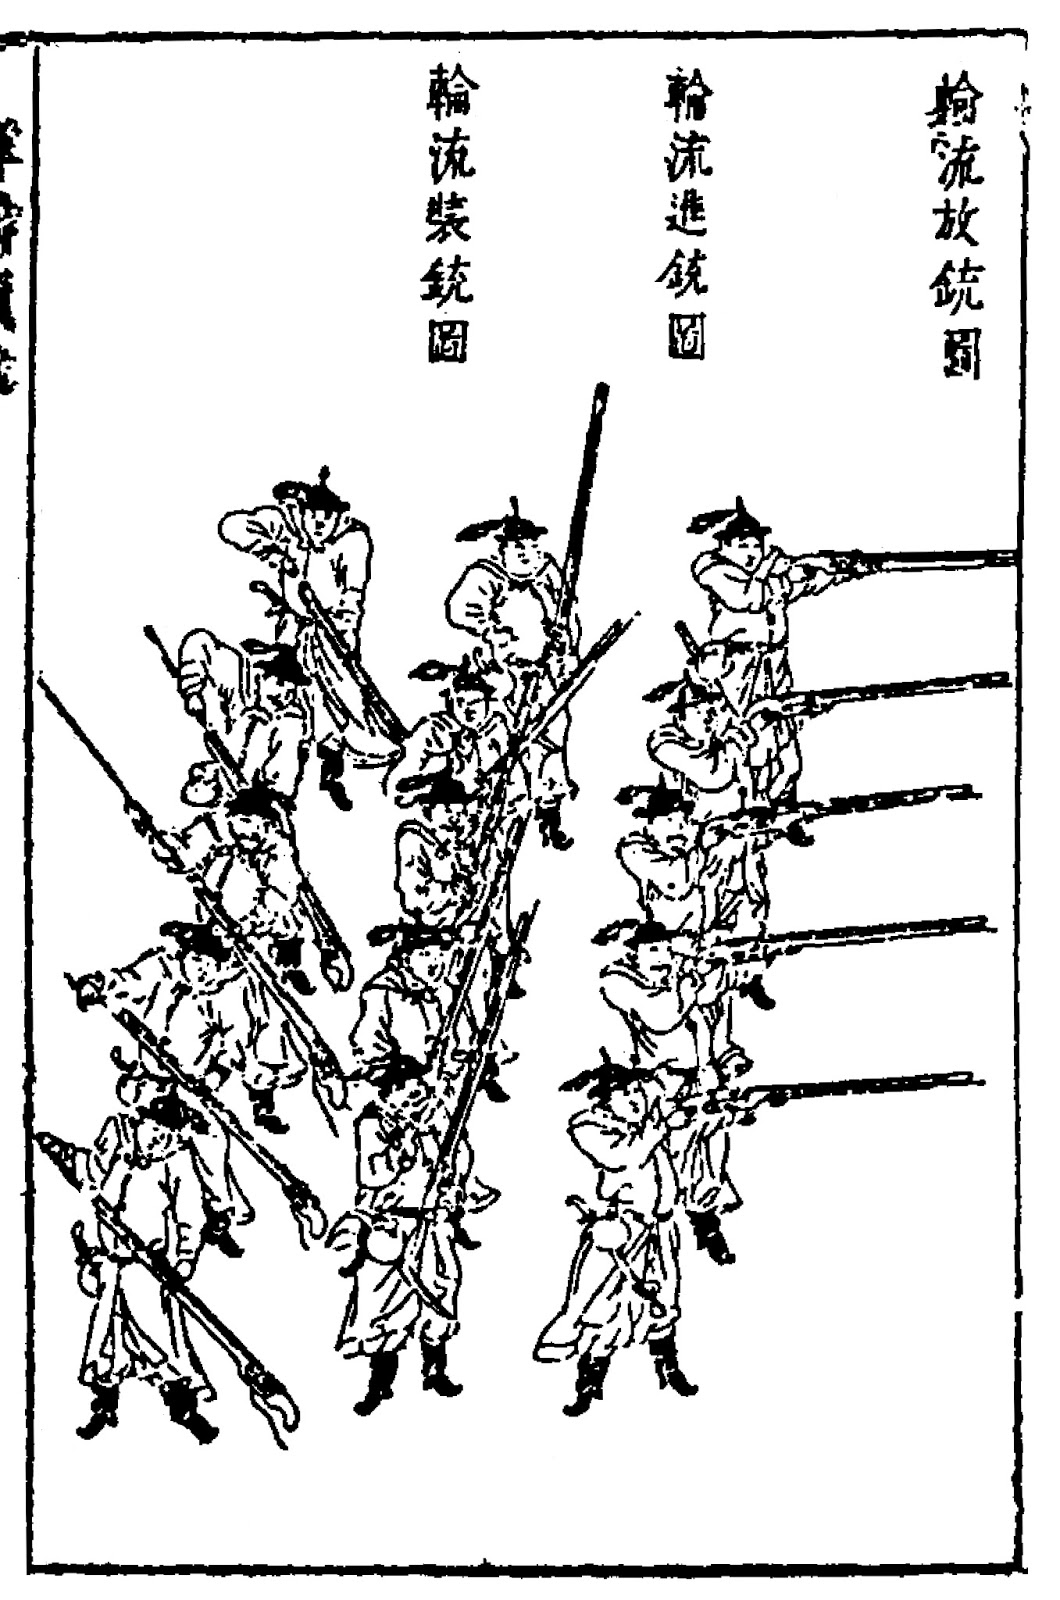 Ming Chinese Arquebusier Tactics